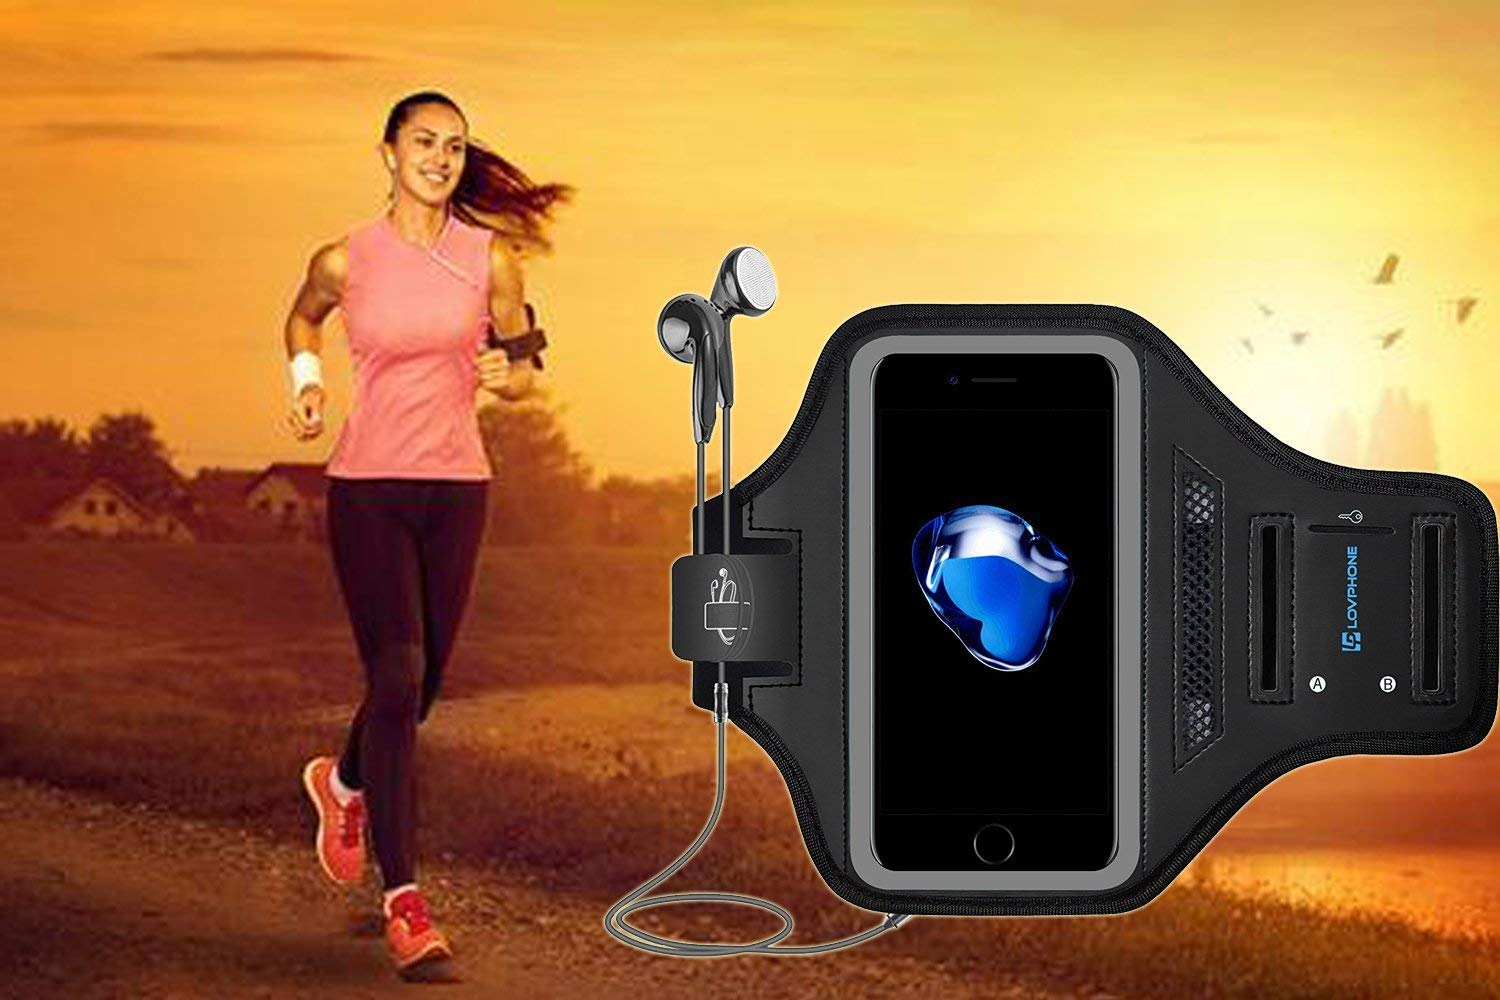 LOVPHONE Man/Women Running Sport Armband for iPhone 7/8 Plus Suitable for Gym Workout w/Kickstand Key Bag Earbuds Holder Card Slot Case, Water Resistant (Gray)